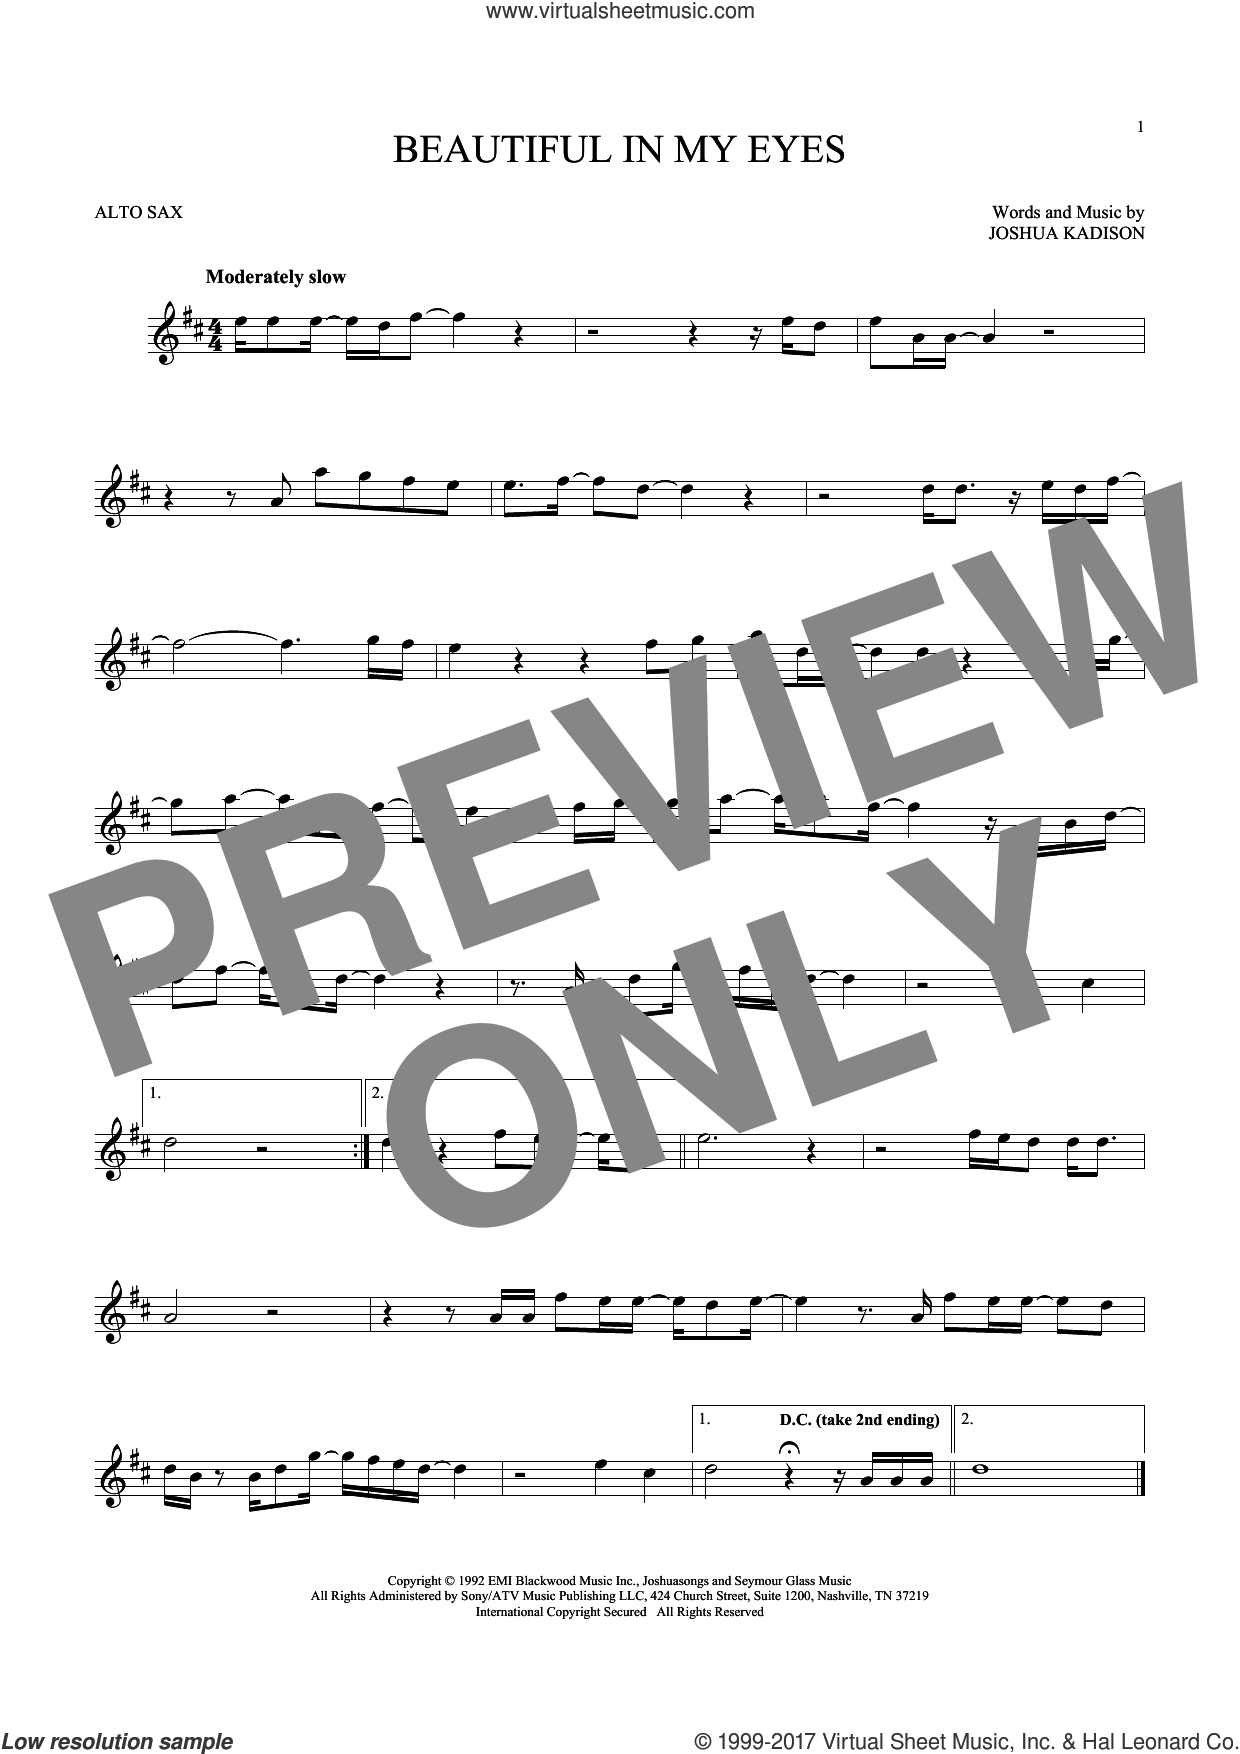 Beautiful In My Eyes sheet music for alto saxophone solo by Joshua Kadison, intermediate skill level